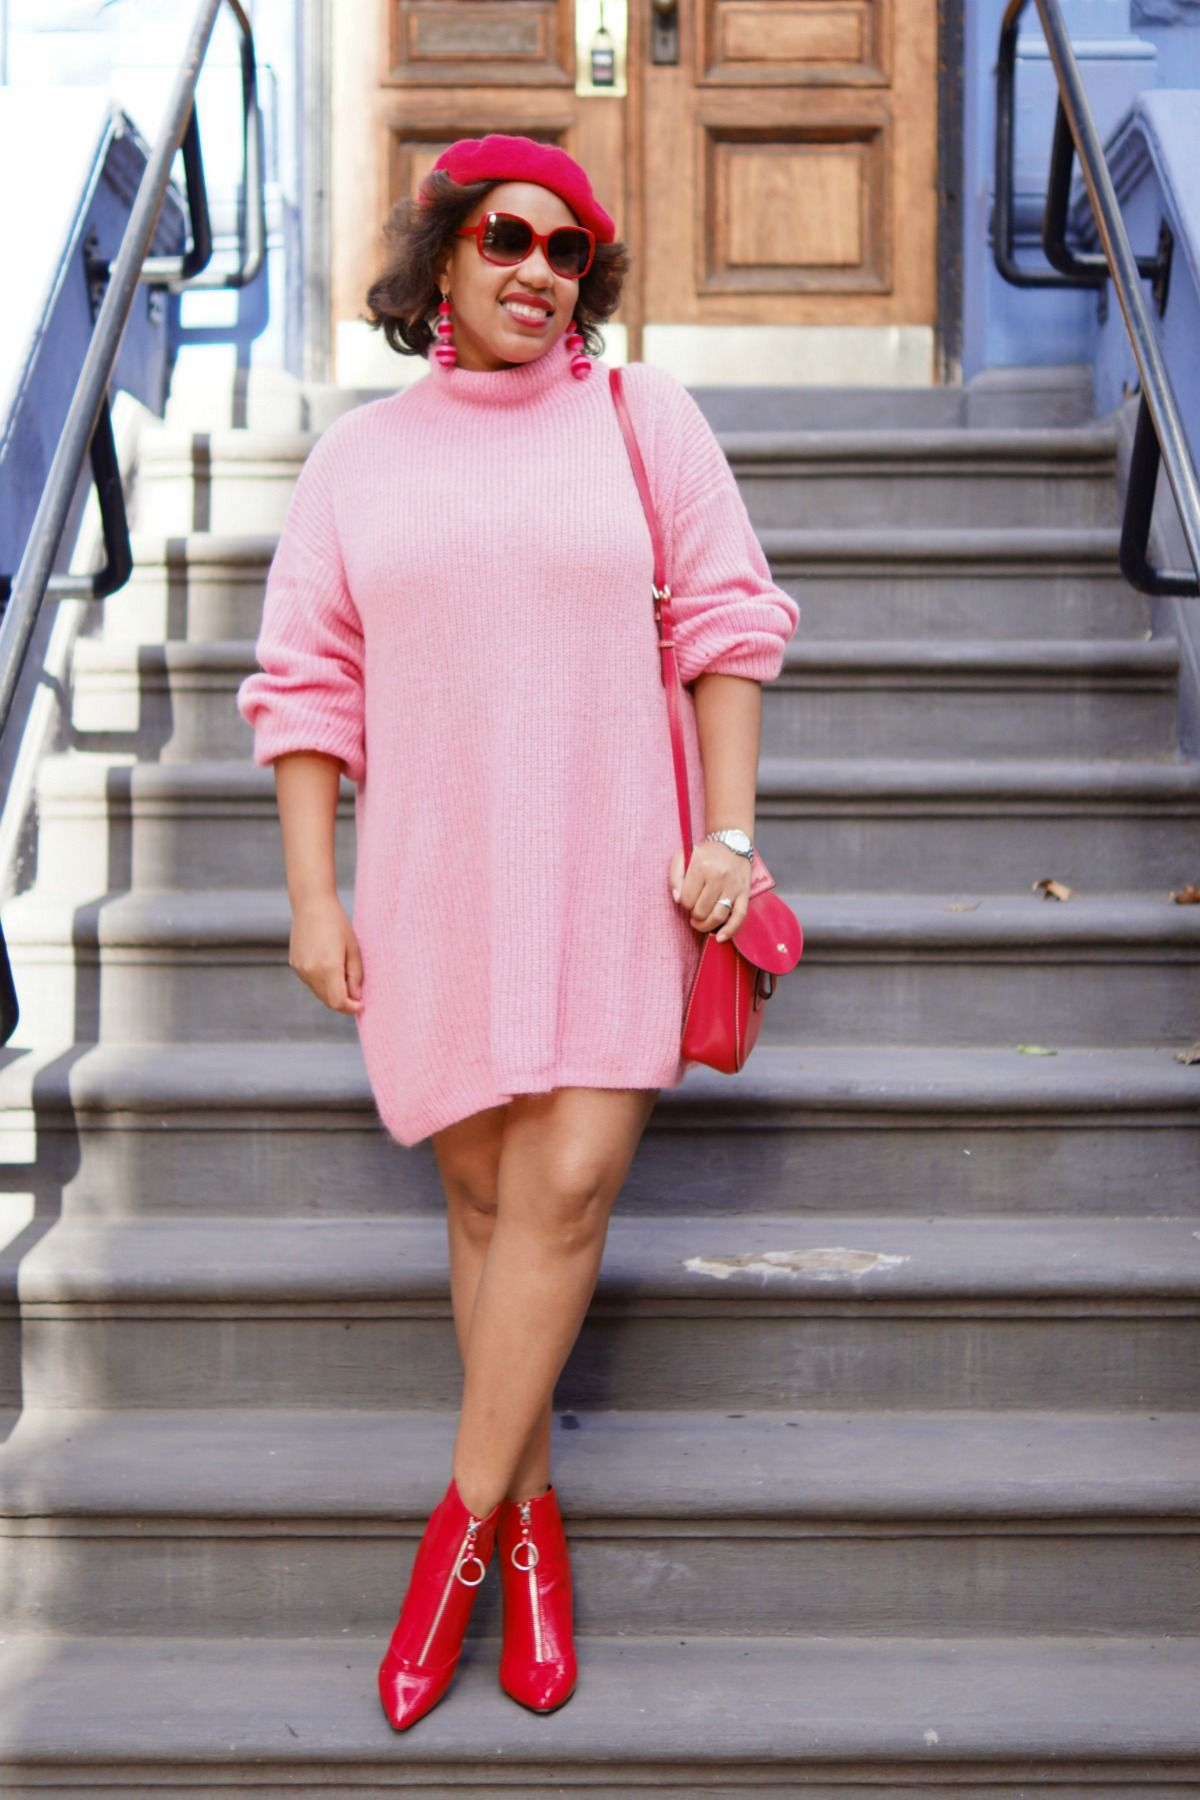 Pink & Red | Red ankle boots, Red sweater dress and Nyc fashion